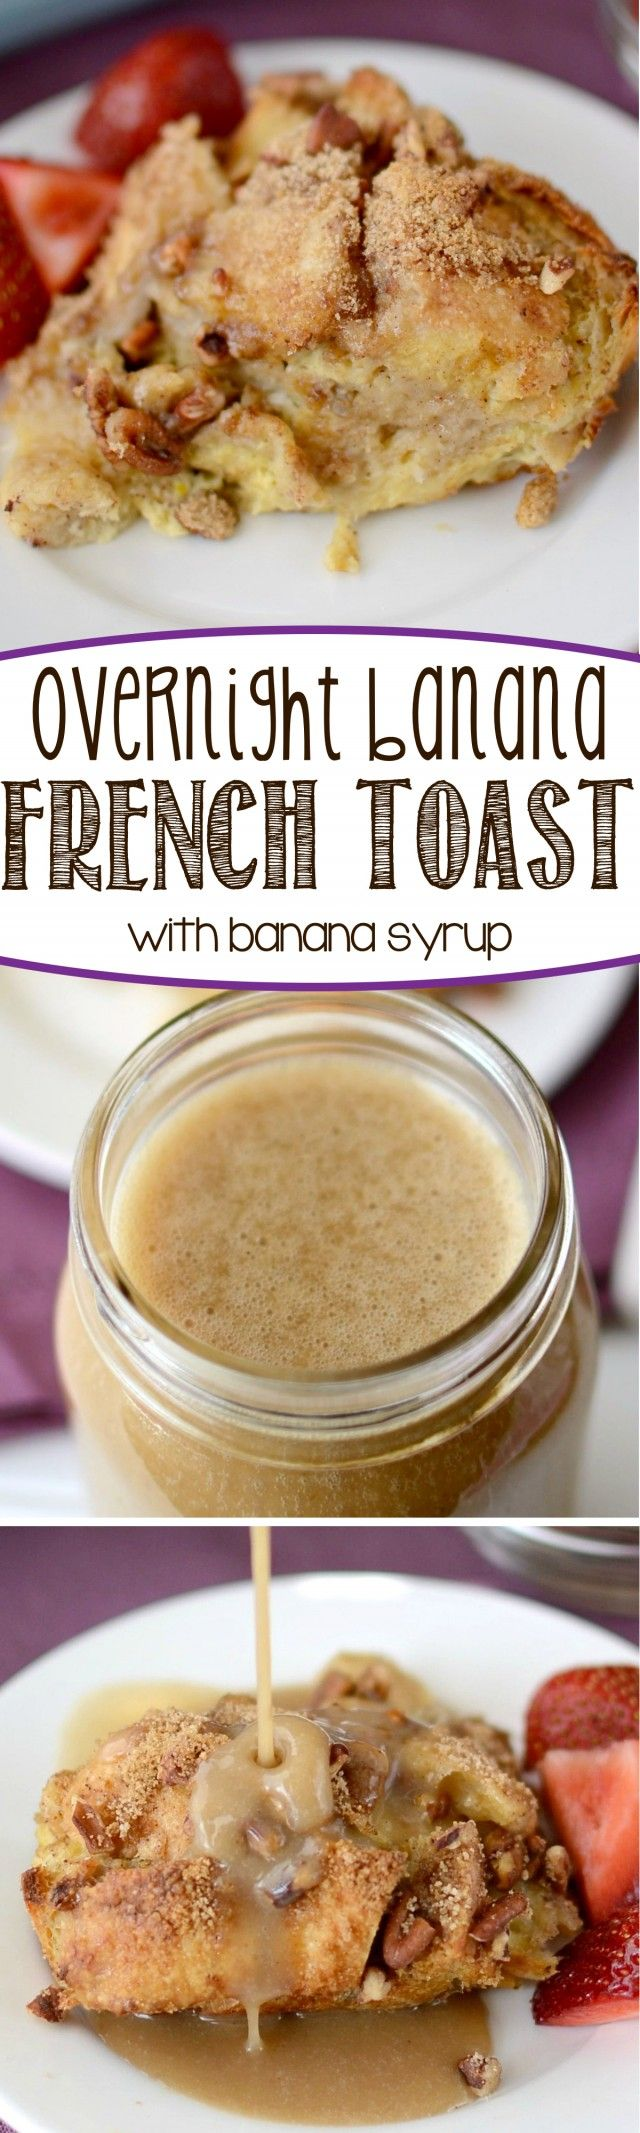 Overnight Banana French Toast with Banana syrup! You guys, this is the best breakfast recipe EVER.